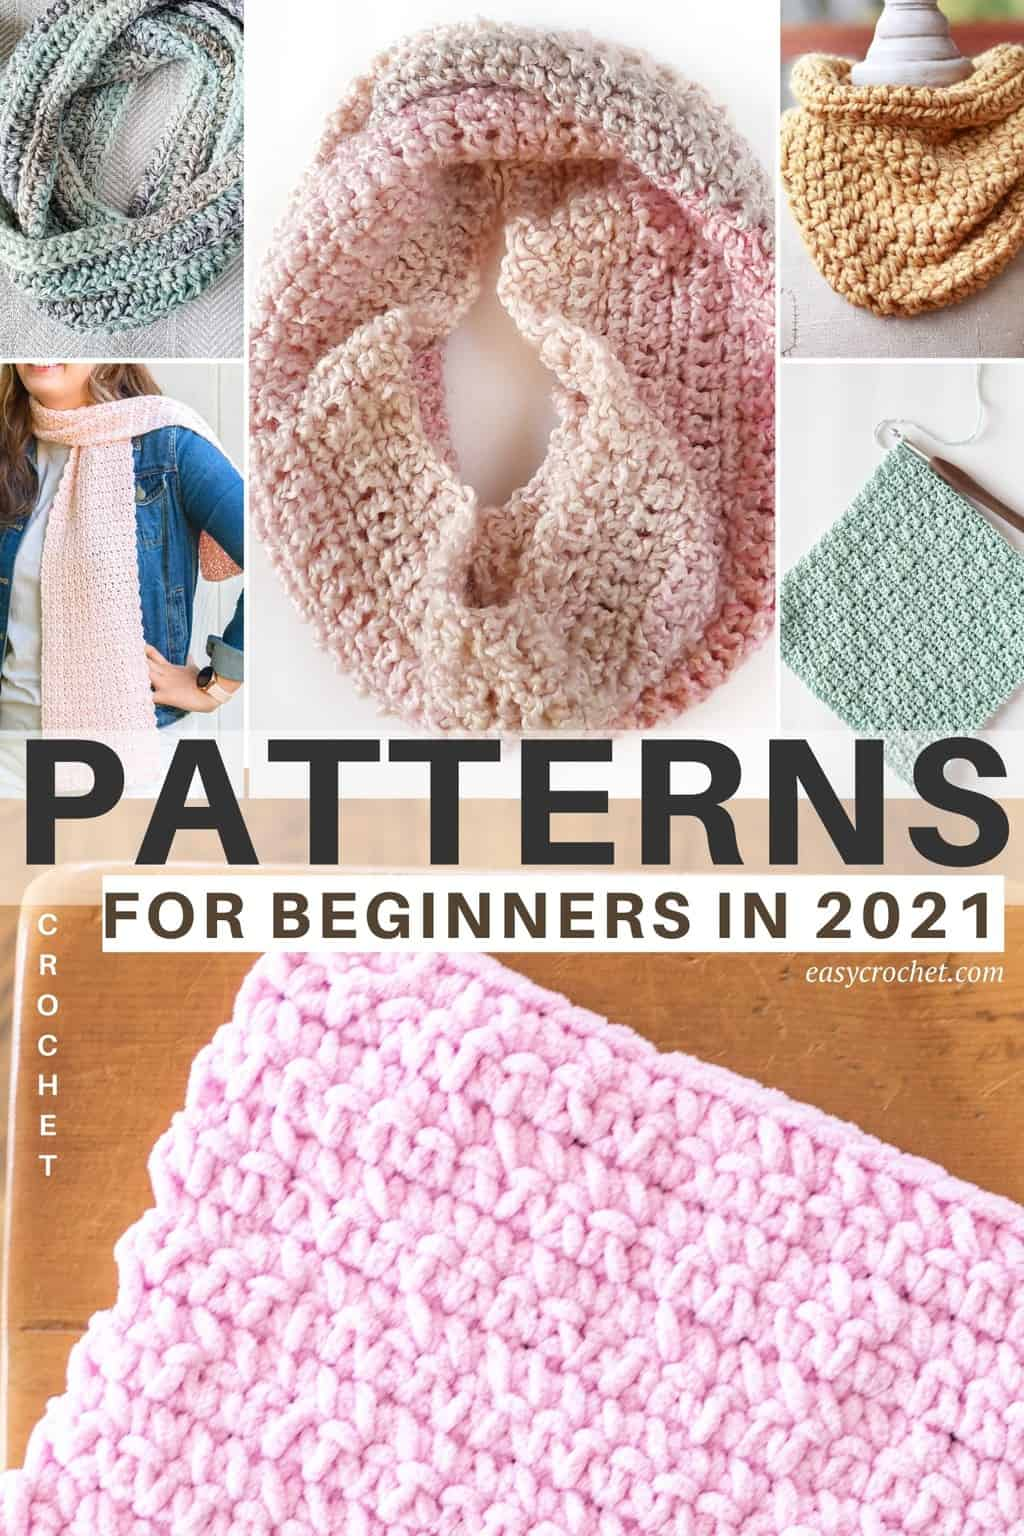 Must make beginner crochet projects for 2021! All free crochet patterns such as blankets, cowls, and more! via @easycrochetcom